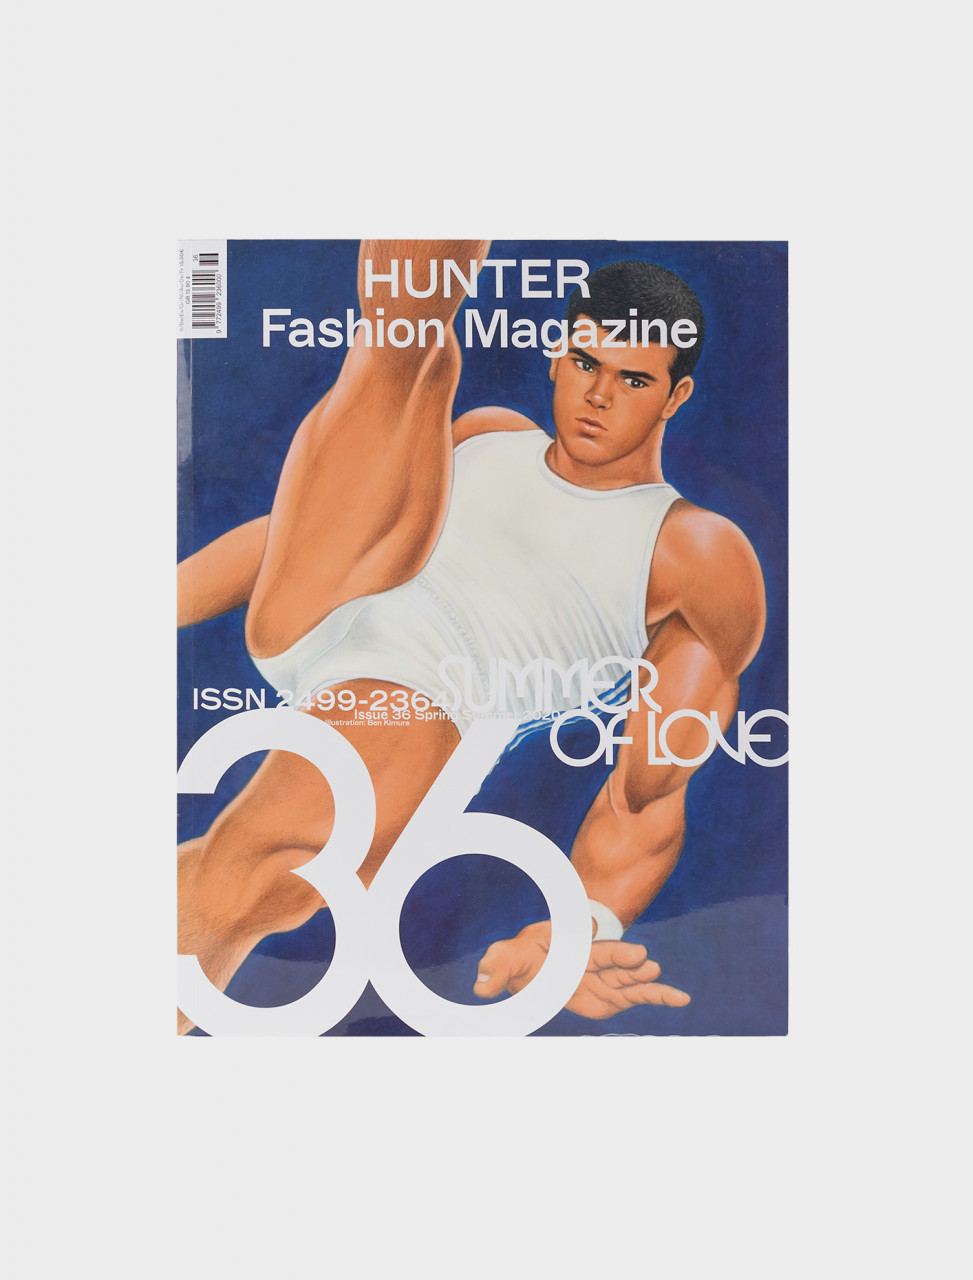 Cover of Issue 36 Summer of Love. Hunter Magazine.